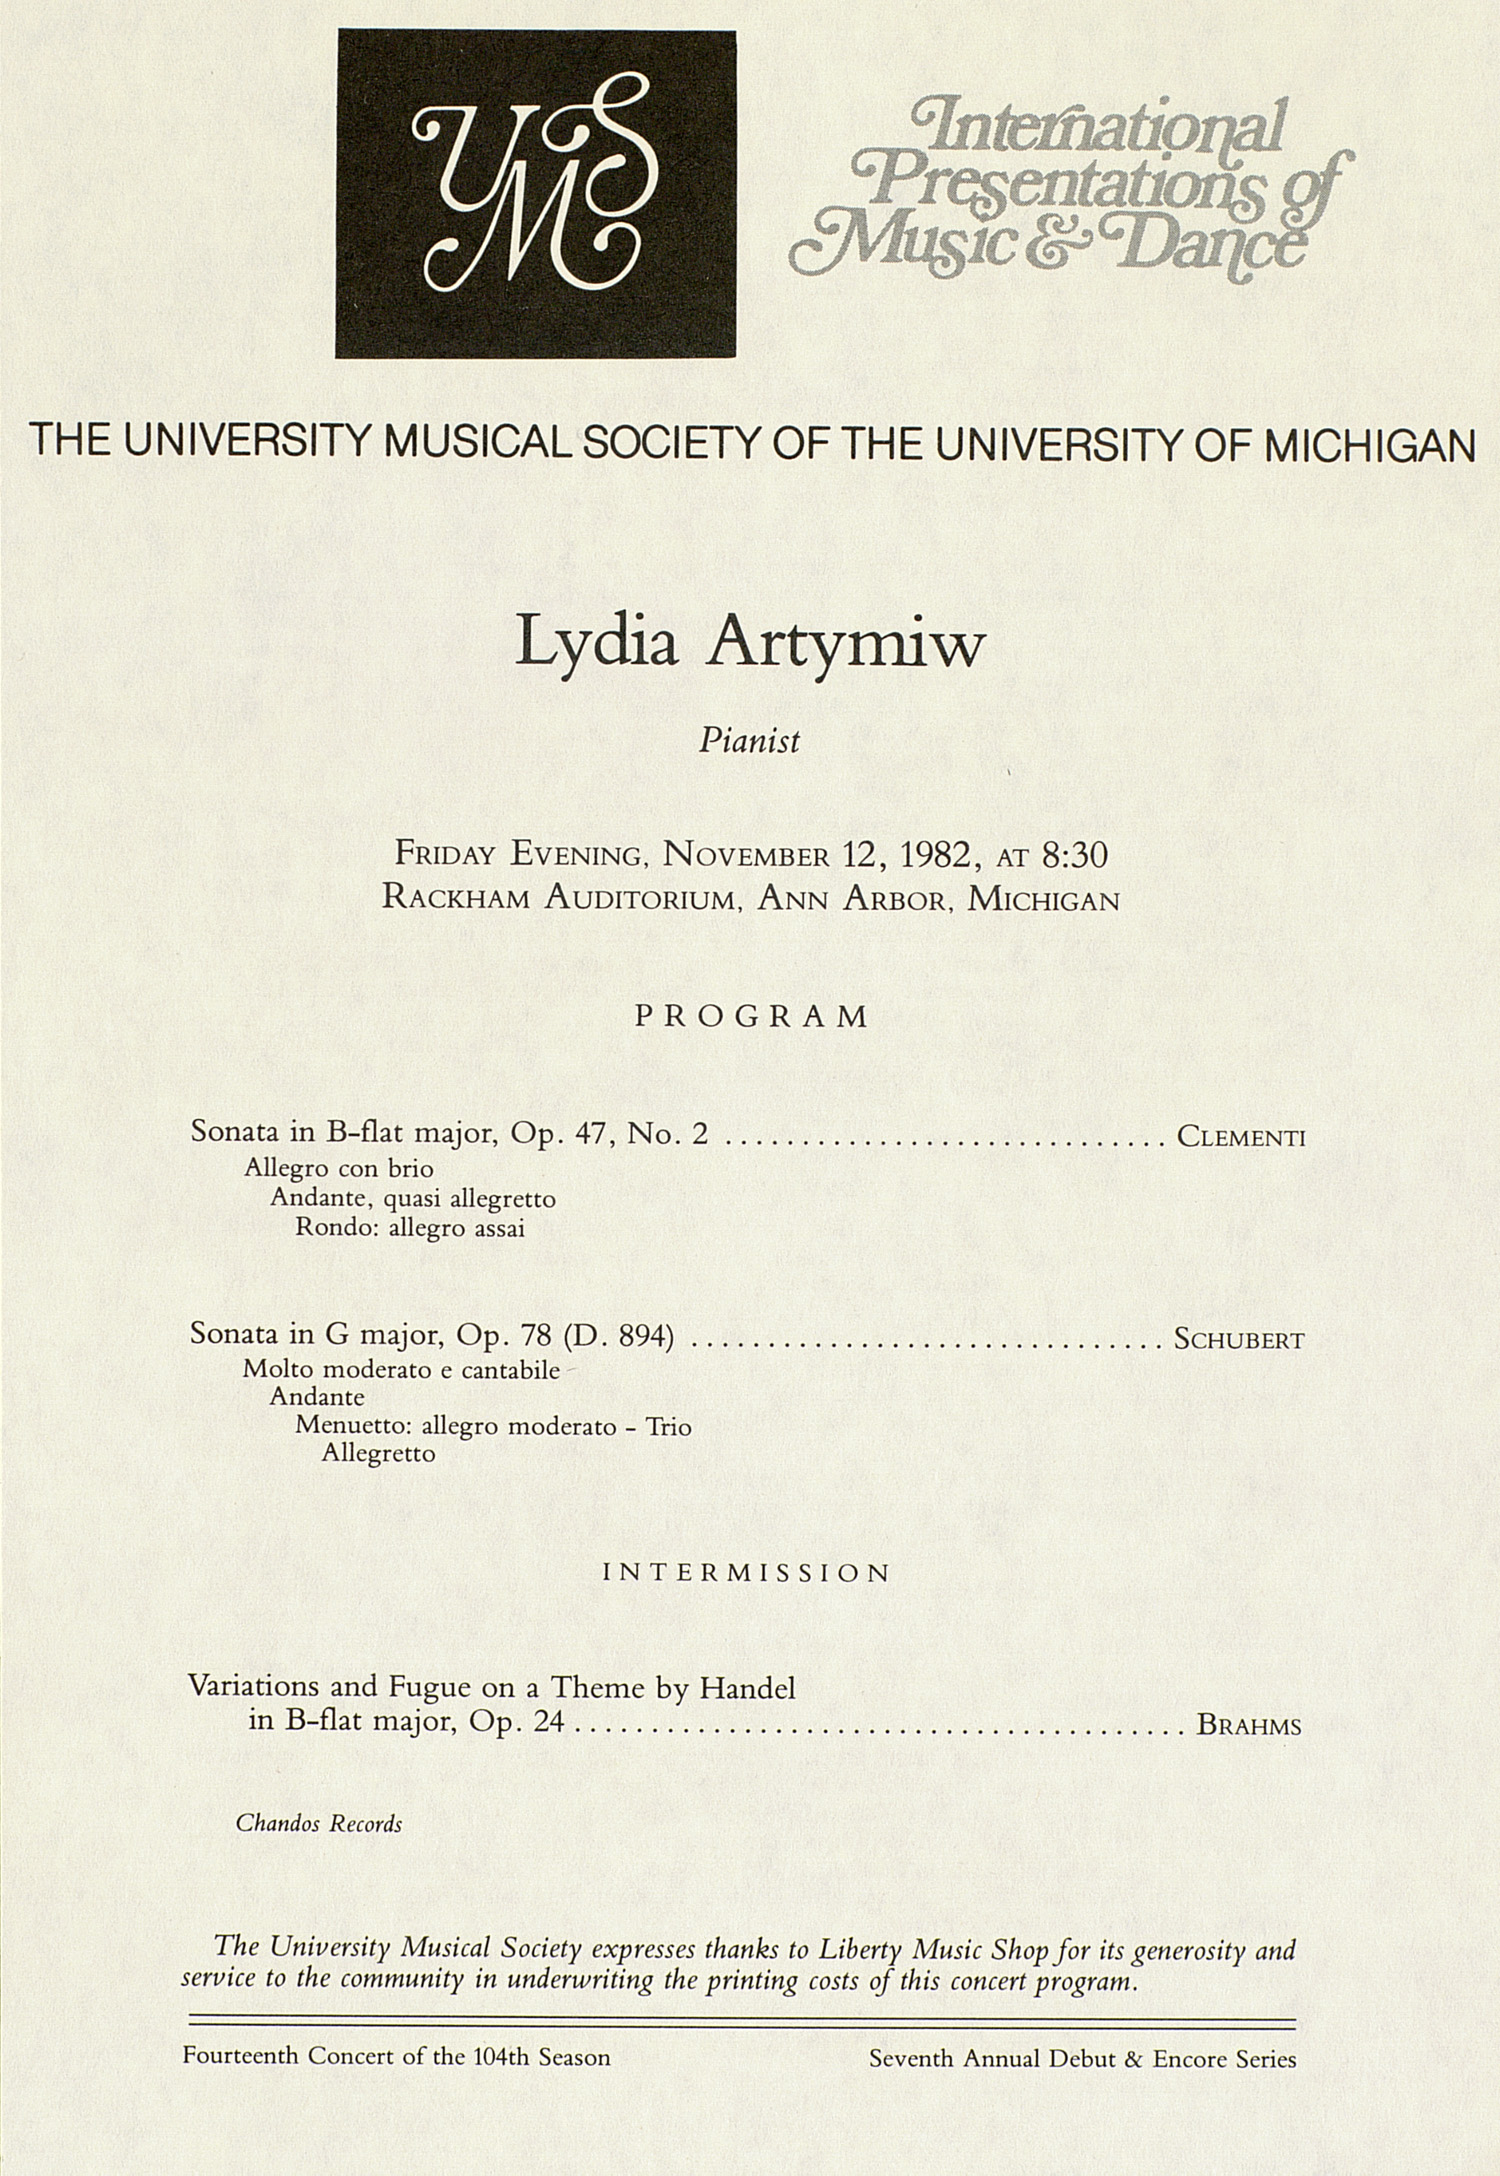 UMS Concert Program, November 12, 1982: International Presentations Of Music & Dance --  image